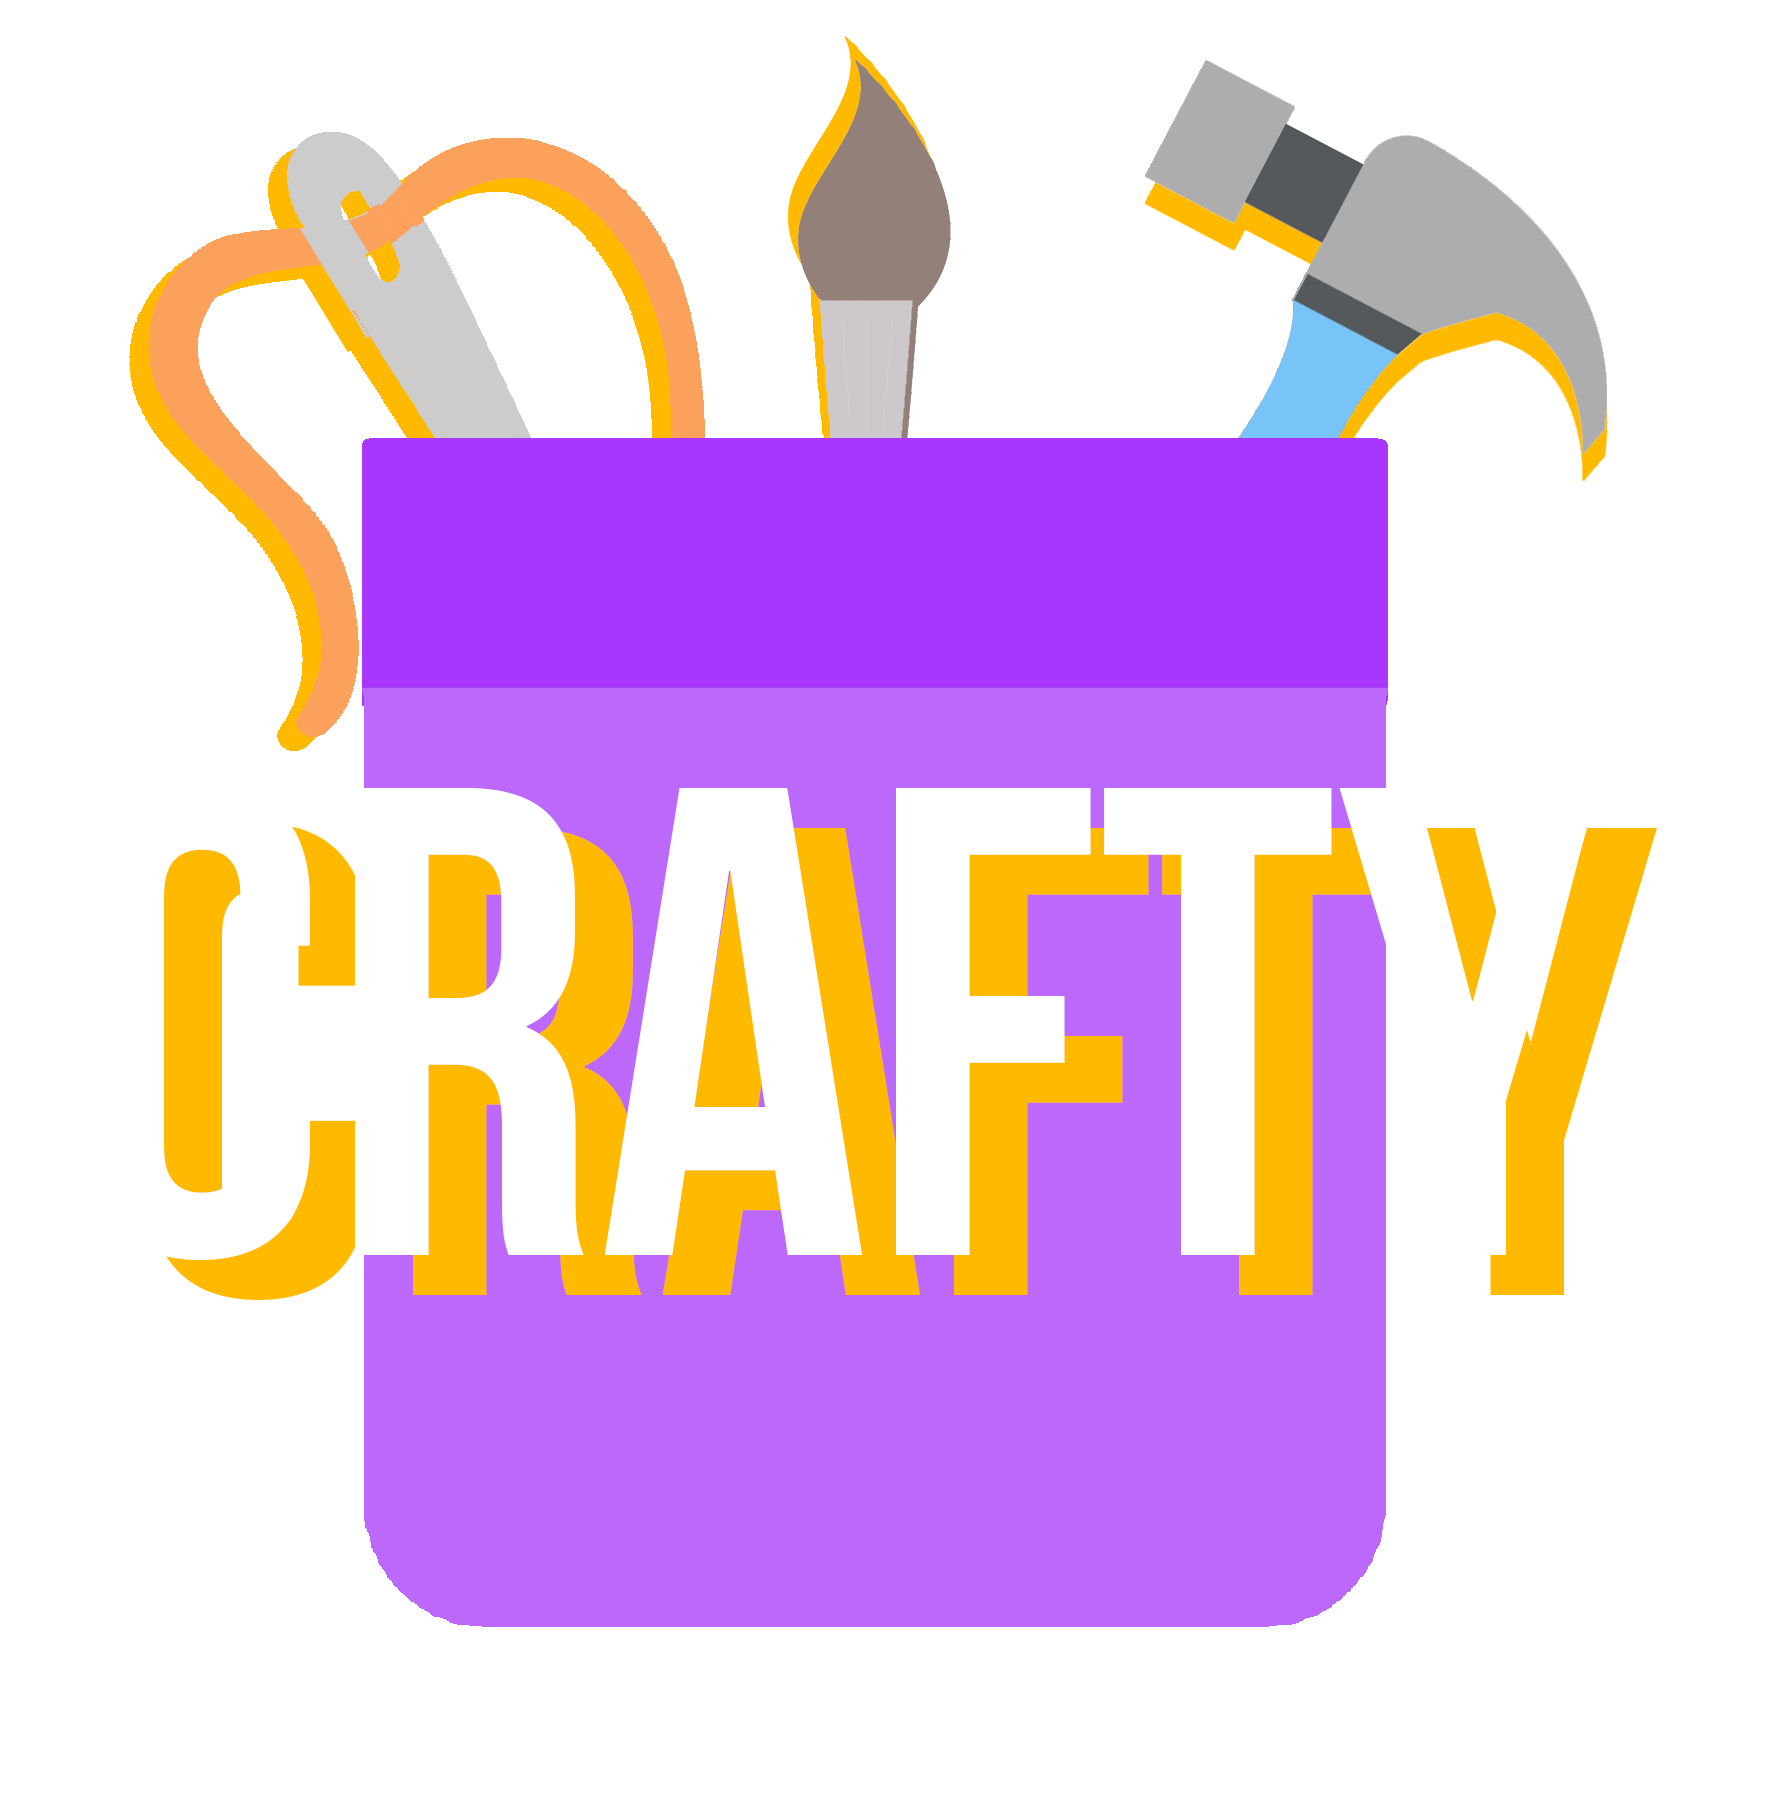 Crafts clipart crafty. Anchor the easiest way